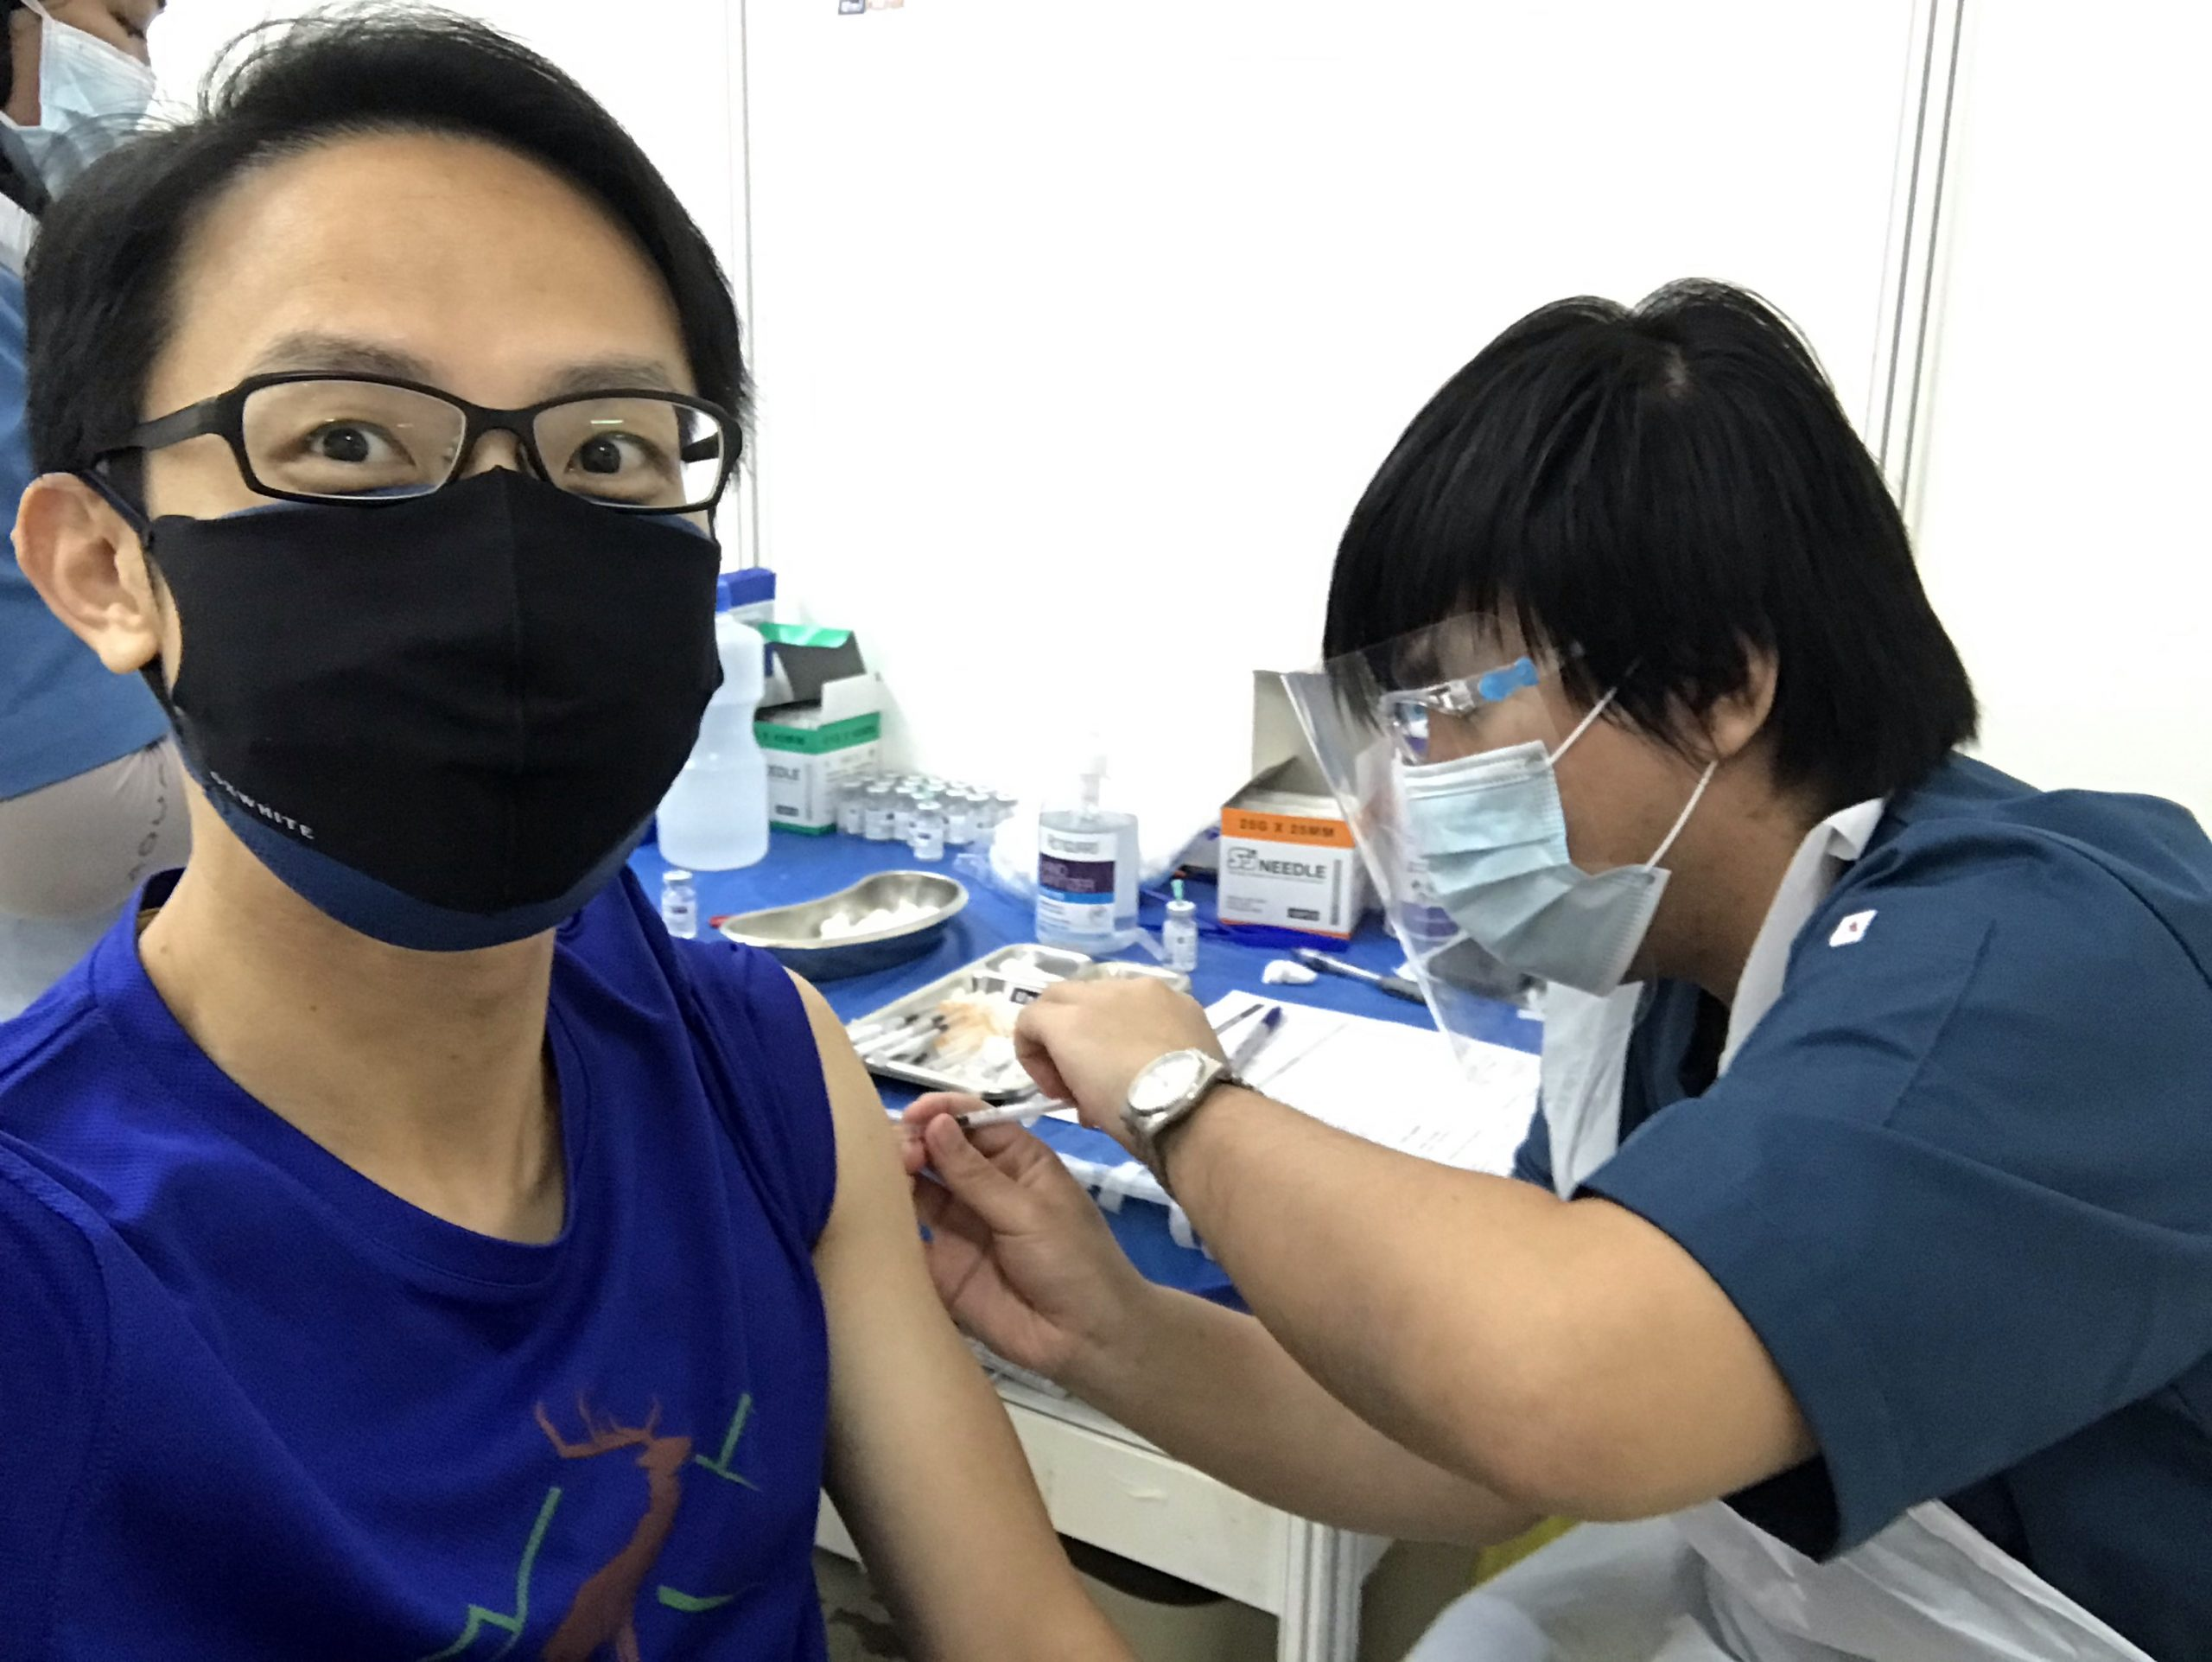 Taking my first jab, it was fast and painless.